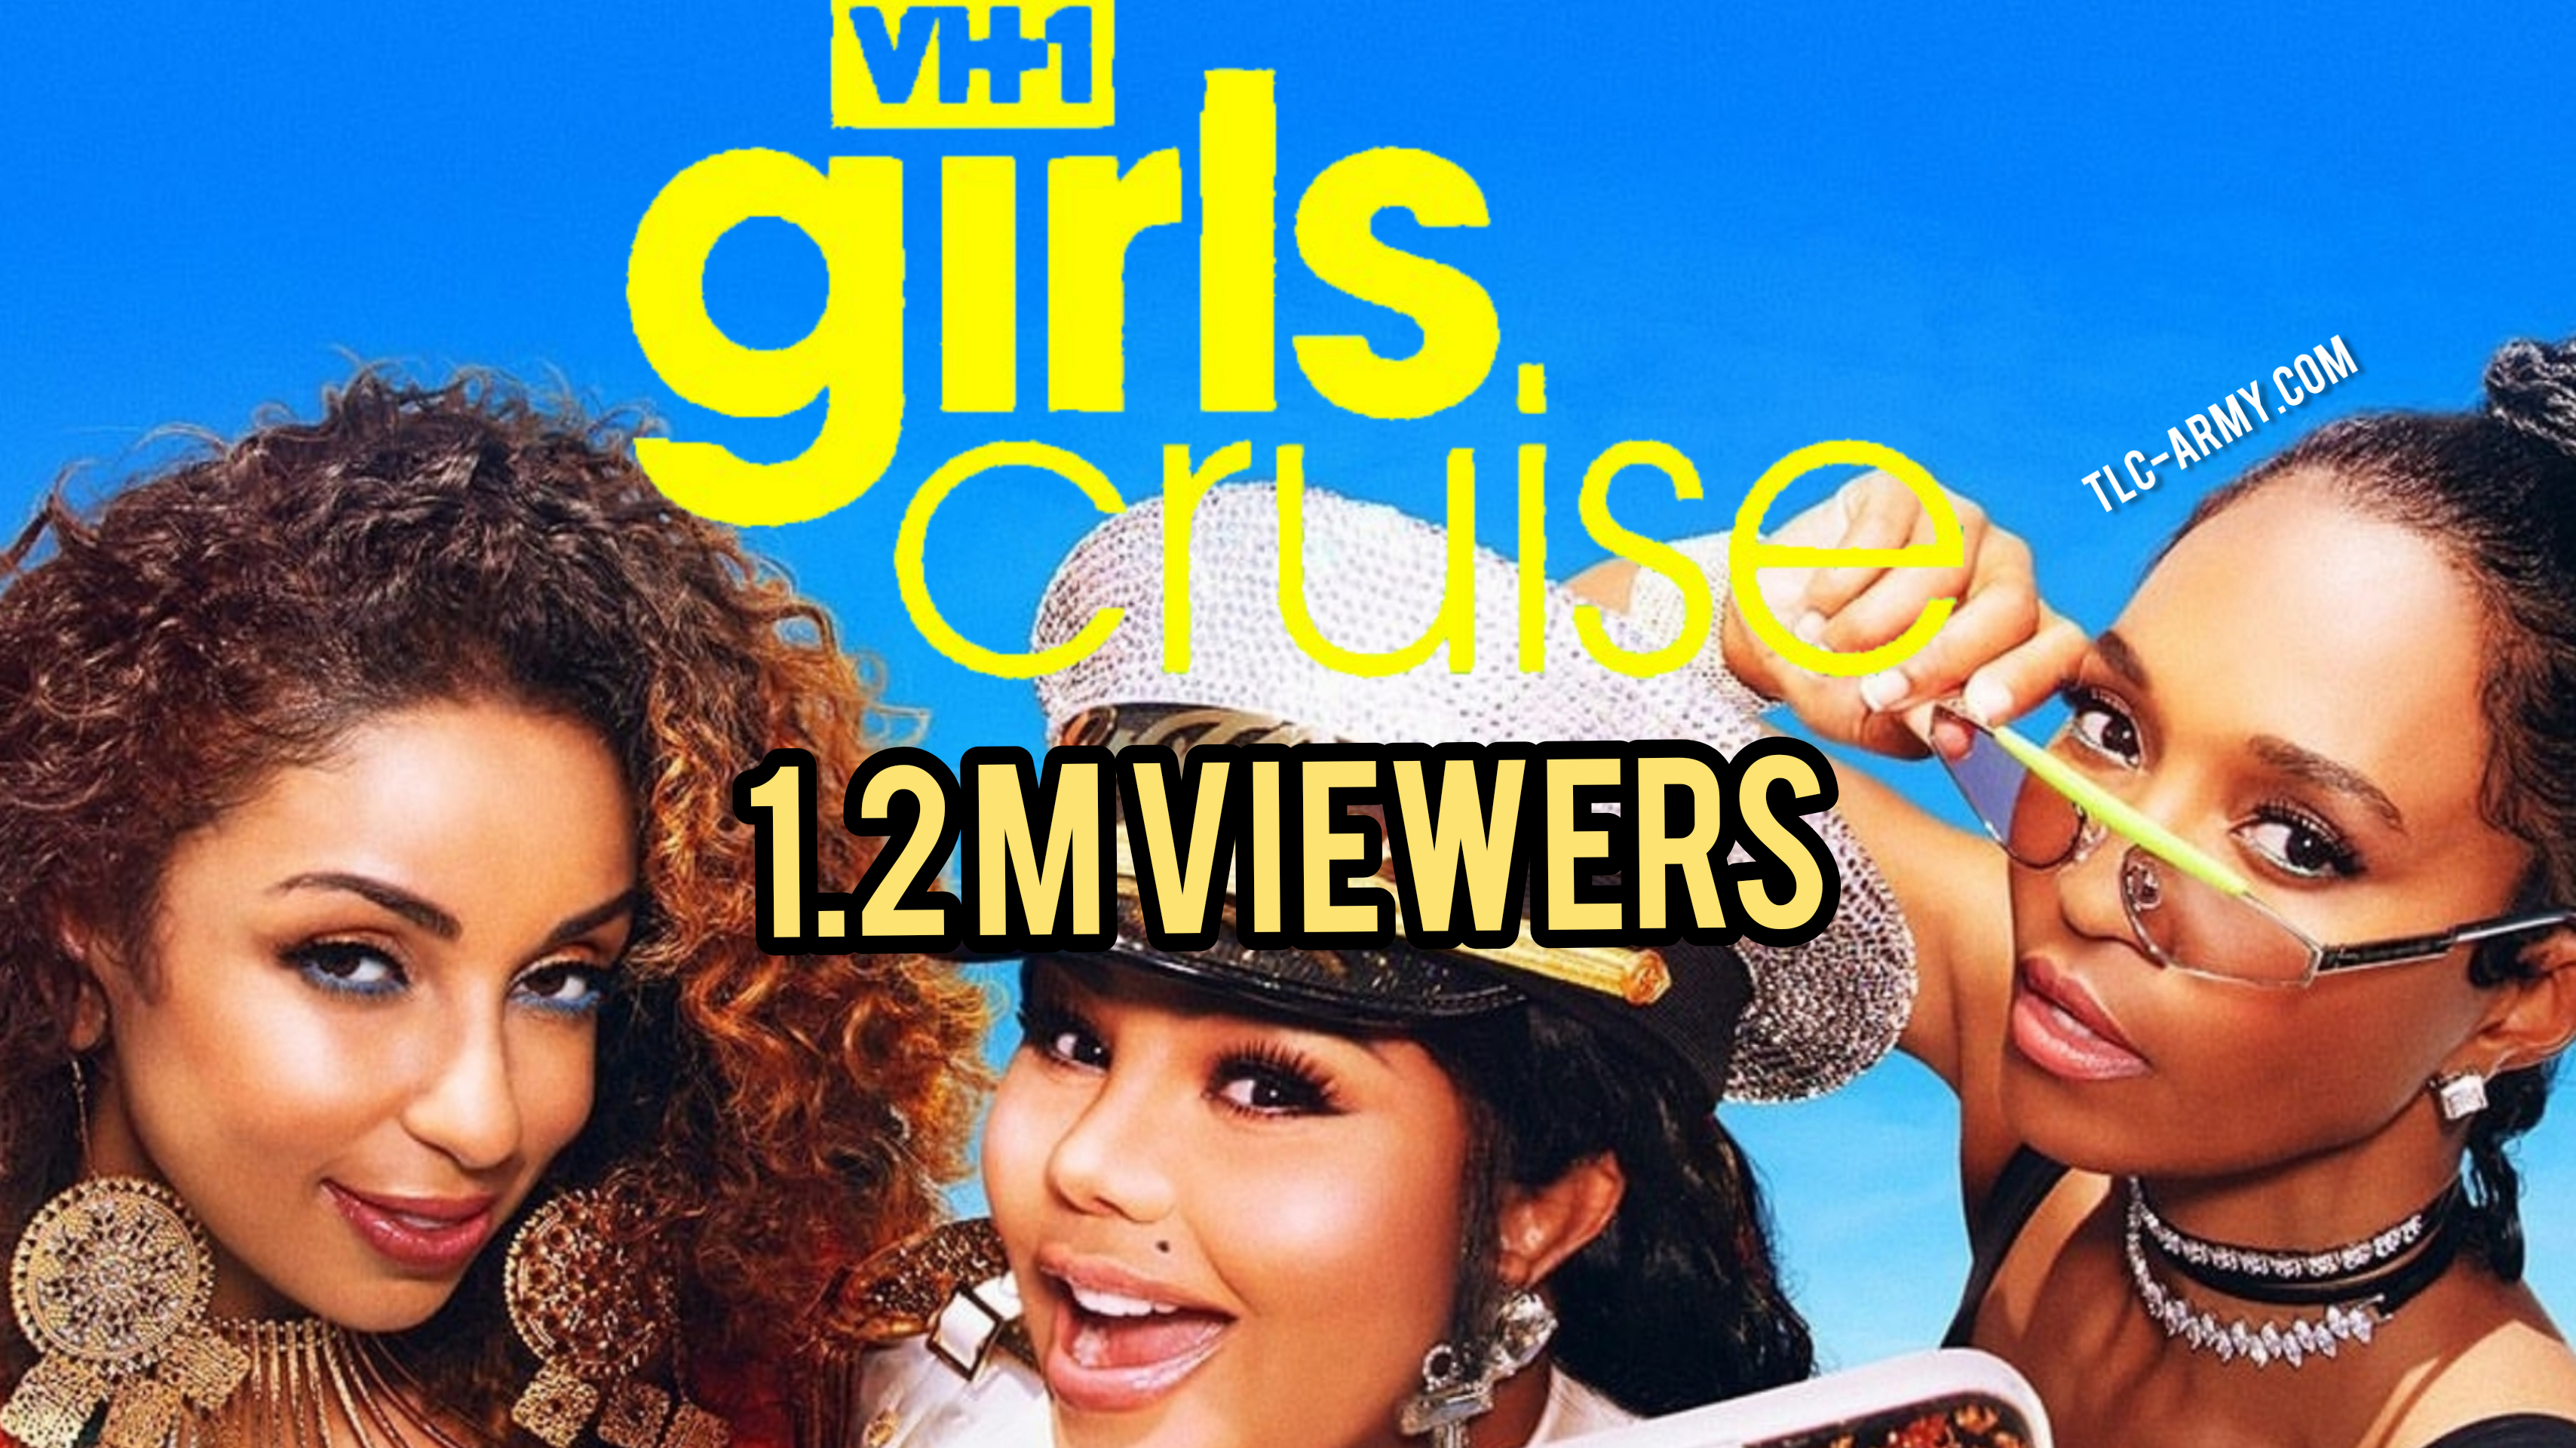 VH1's 'Girls Cruise' Premiere Draws In 1.2m Viewers